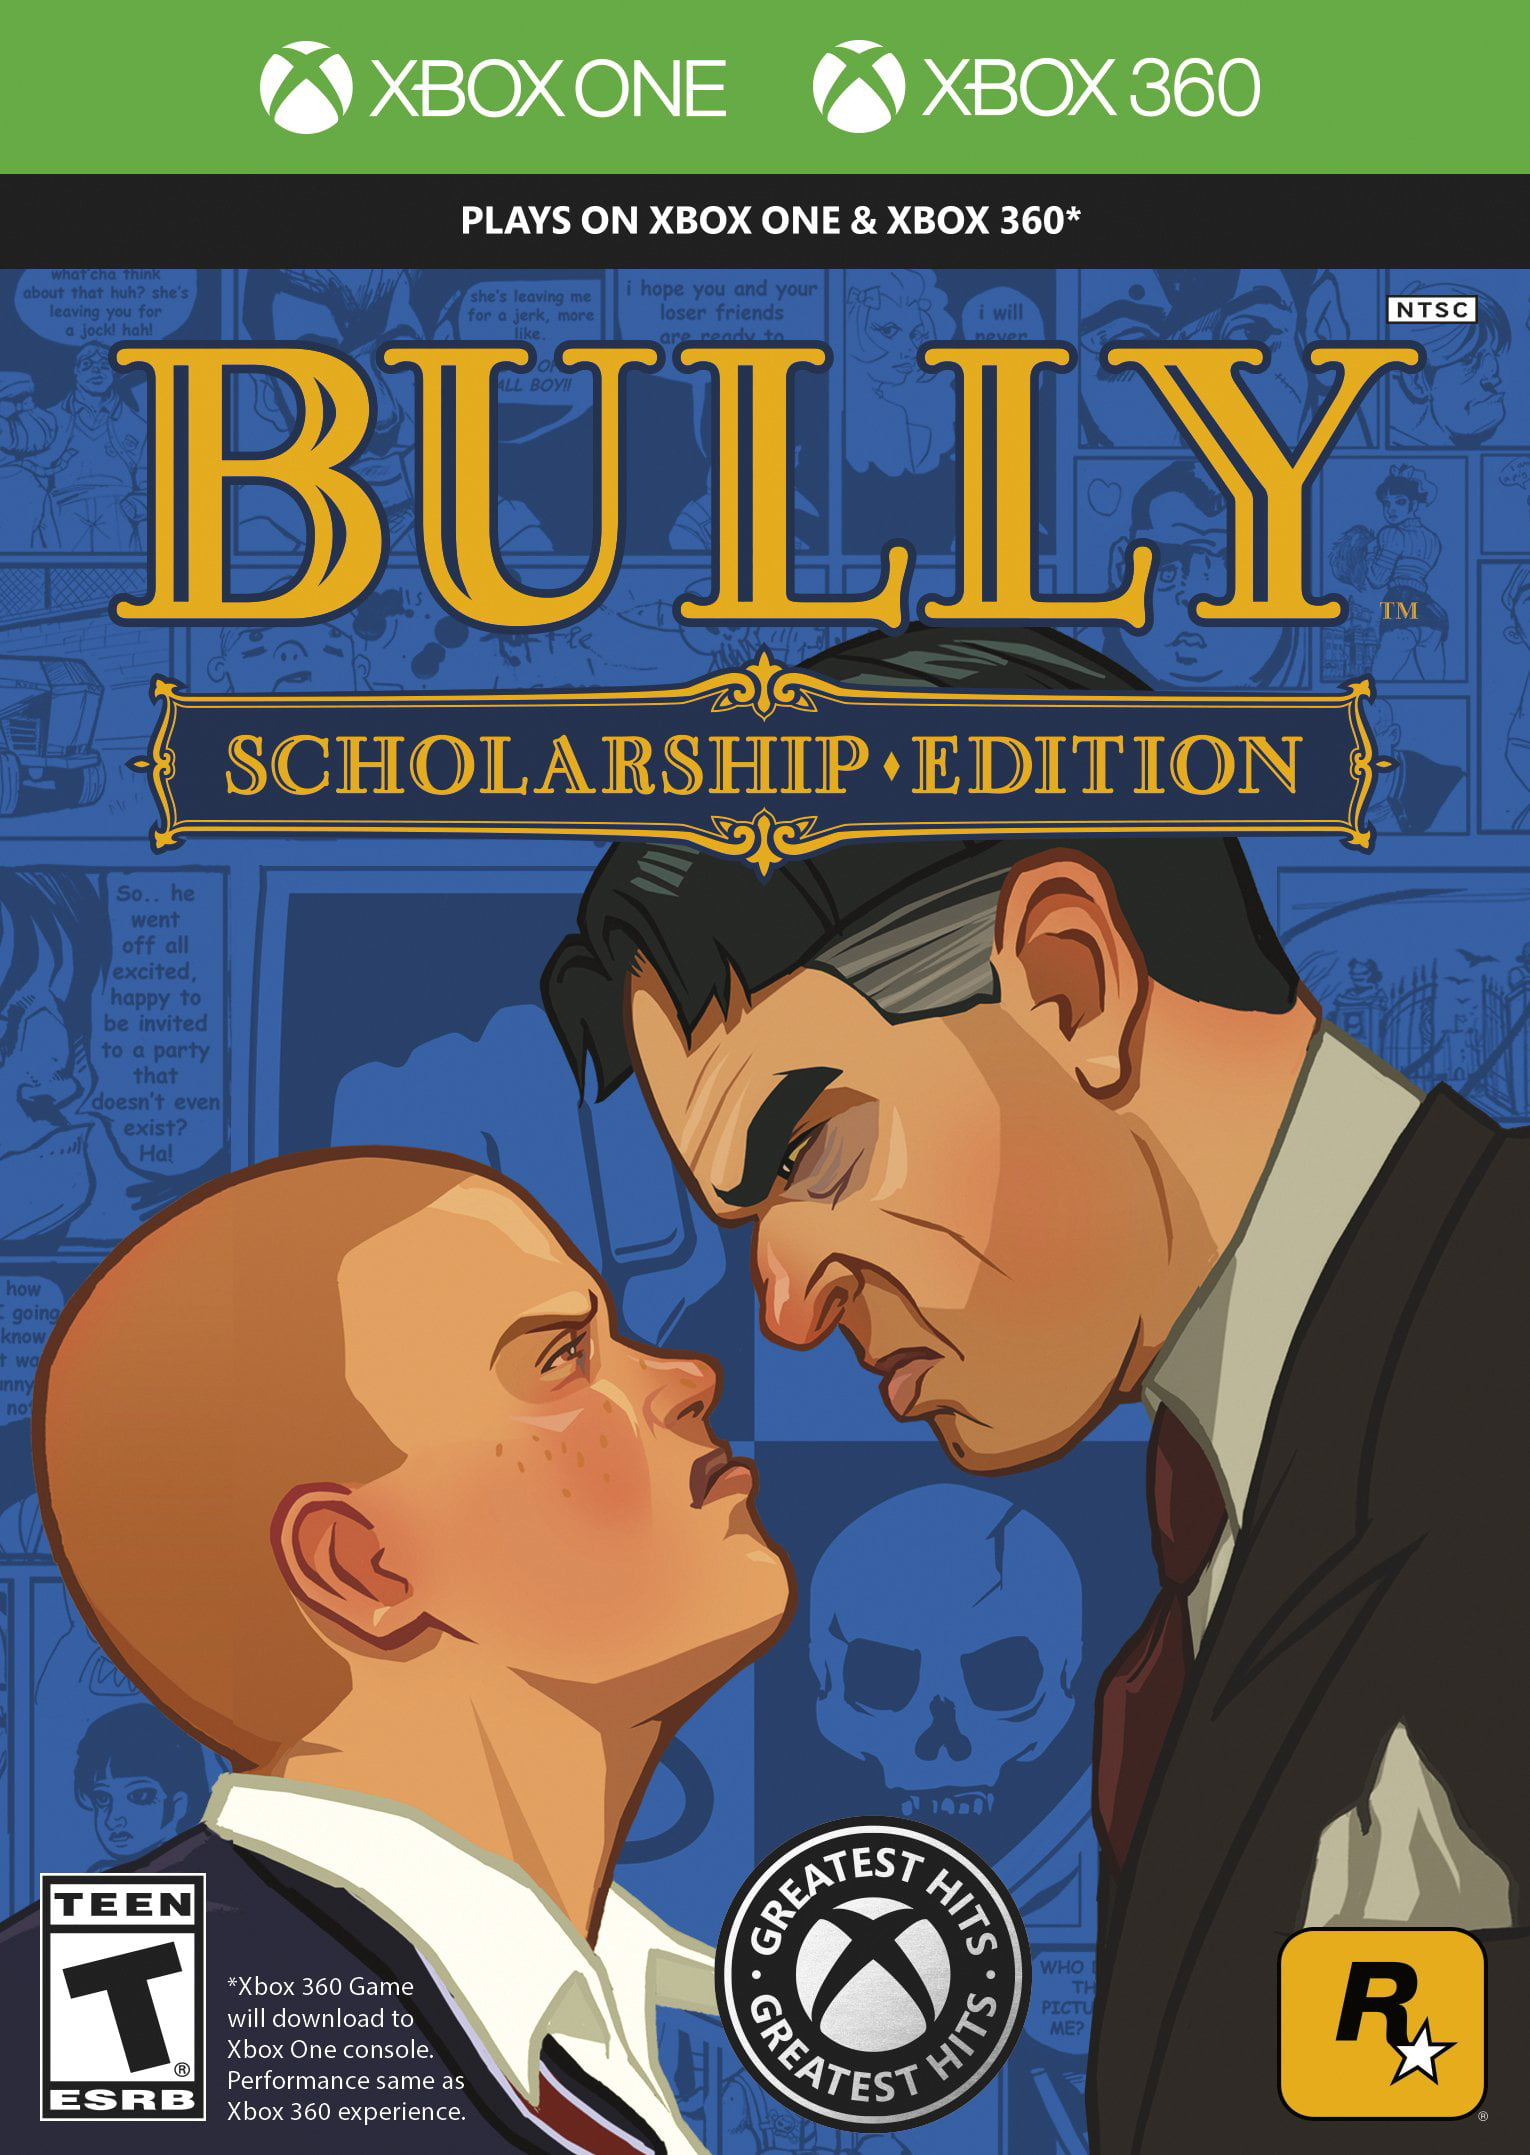 Bully: Scholarship Edition, Rockstar Games, Xbox One 360, 710425498985 by Rockstar Vancouver